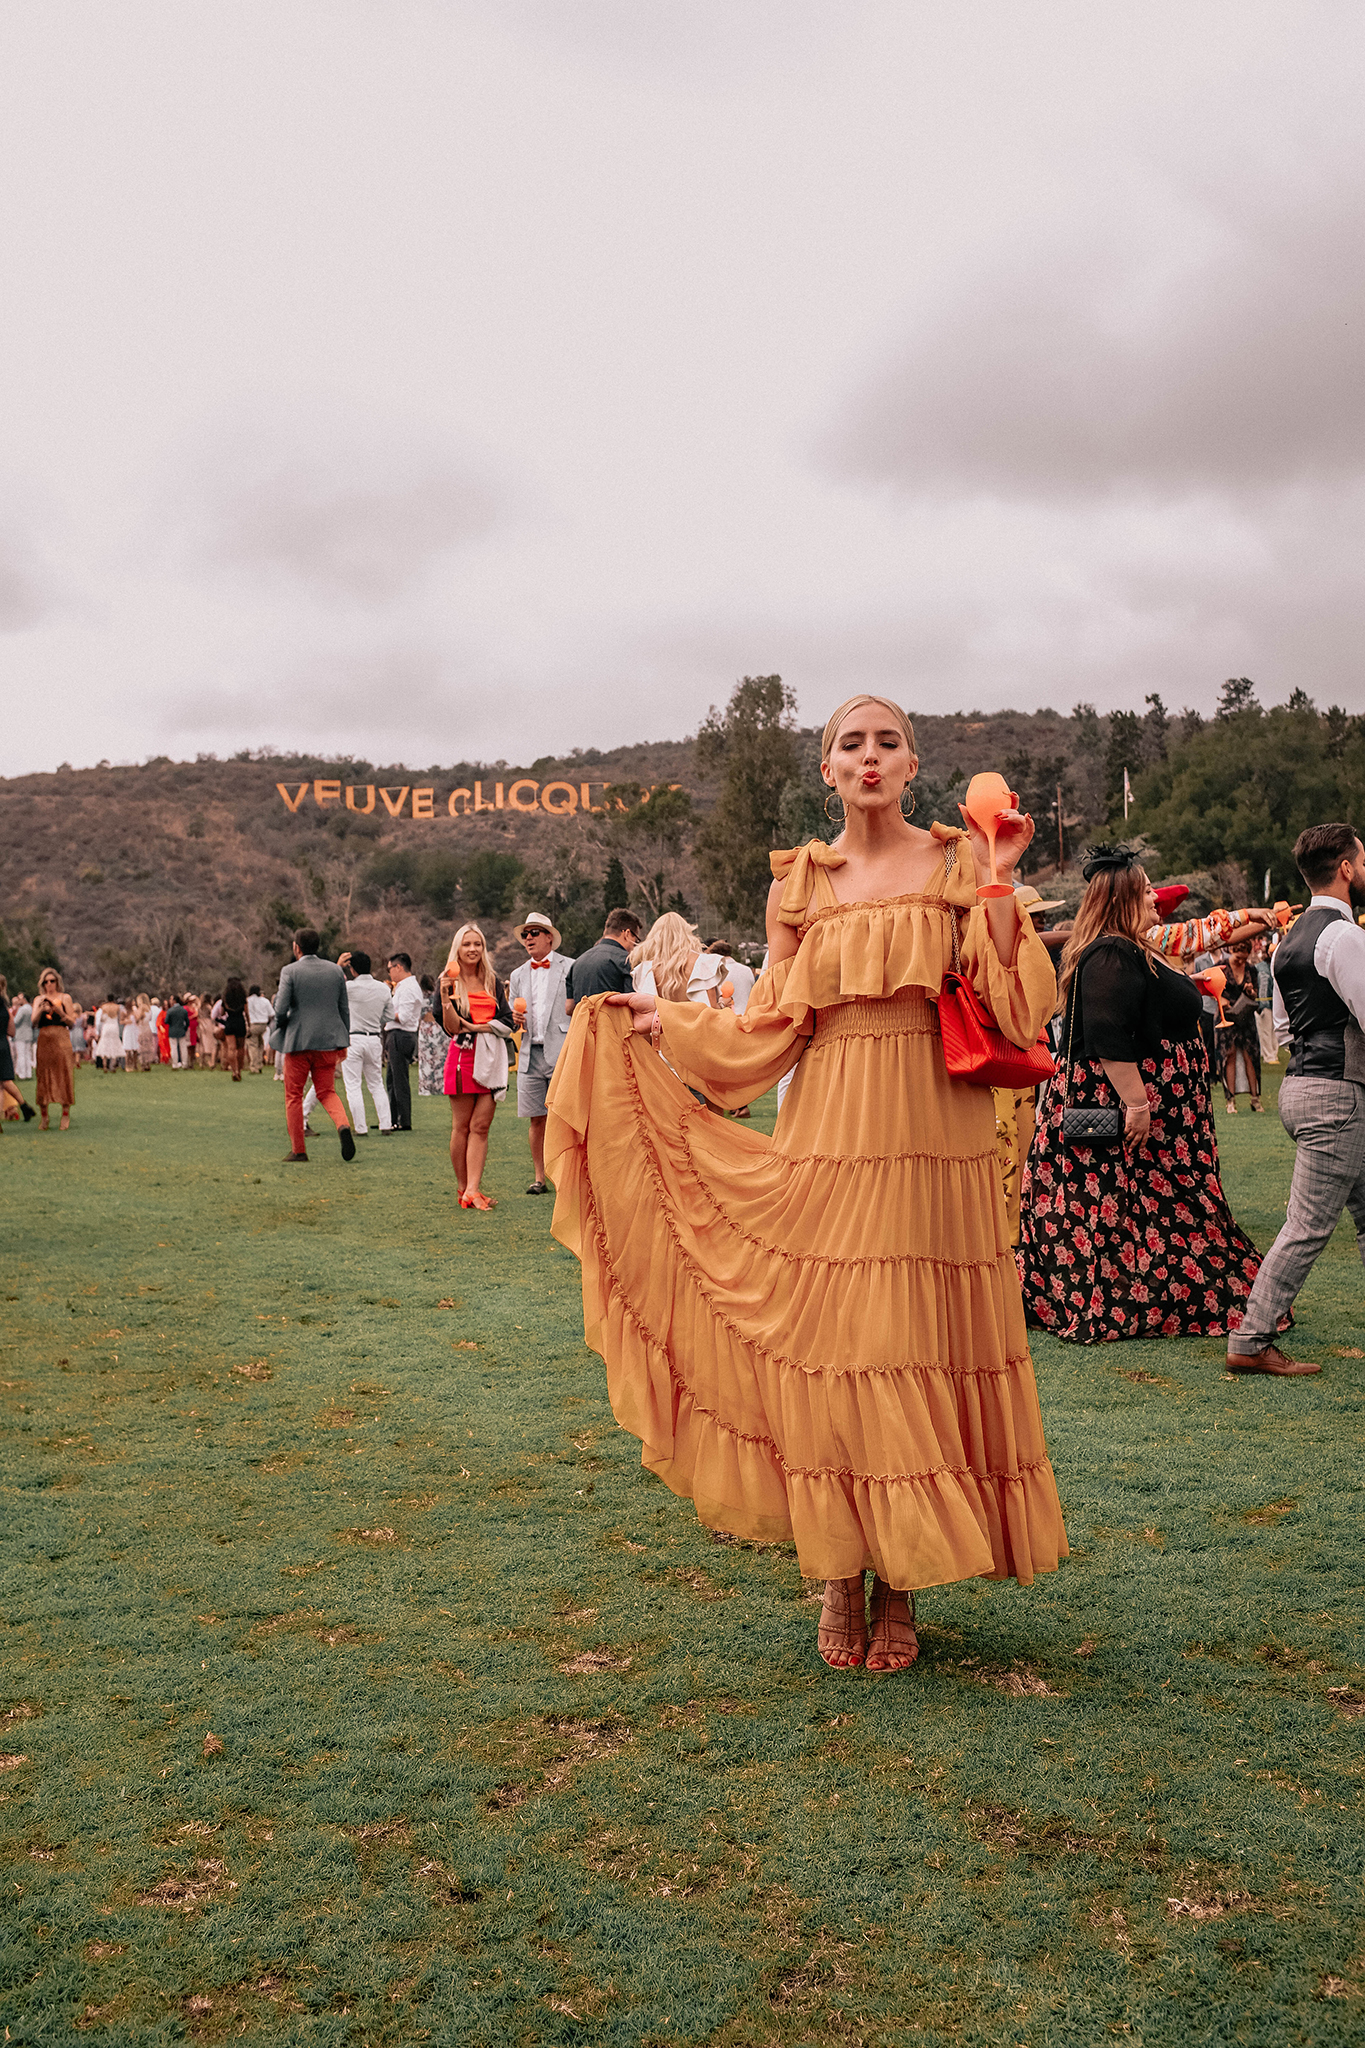 How to Dress for Veuve Clicquot Polo Classic